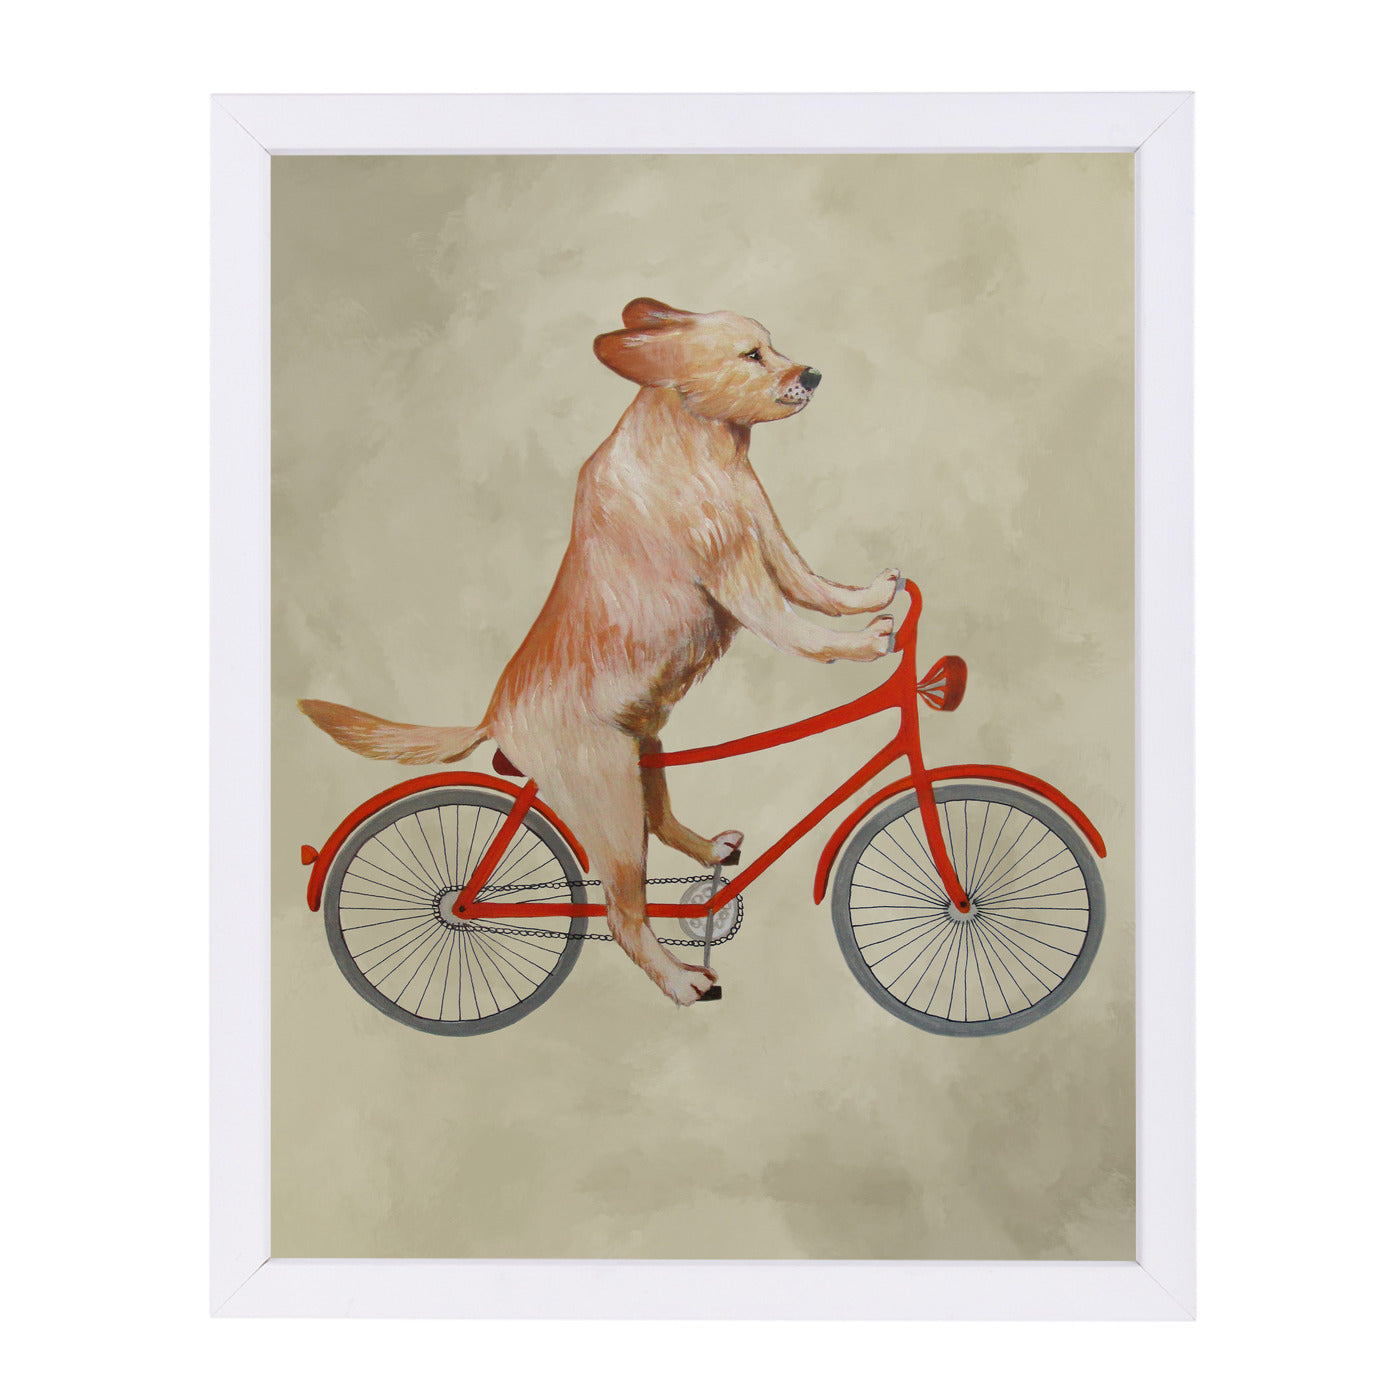 "Golden Retriever On Bicycle By Coco De Paris - White Framed Print, Wall Art, Coco de Paris, 8"" x 10"""